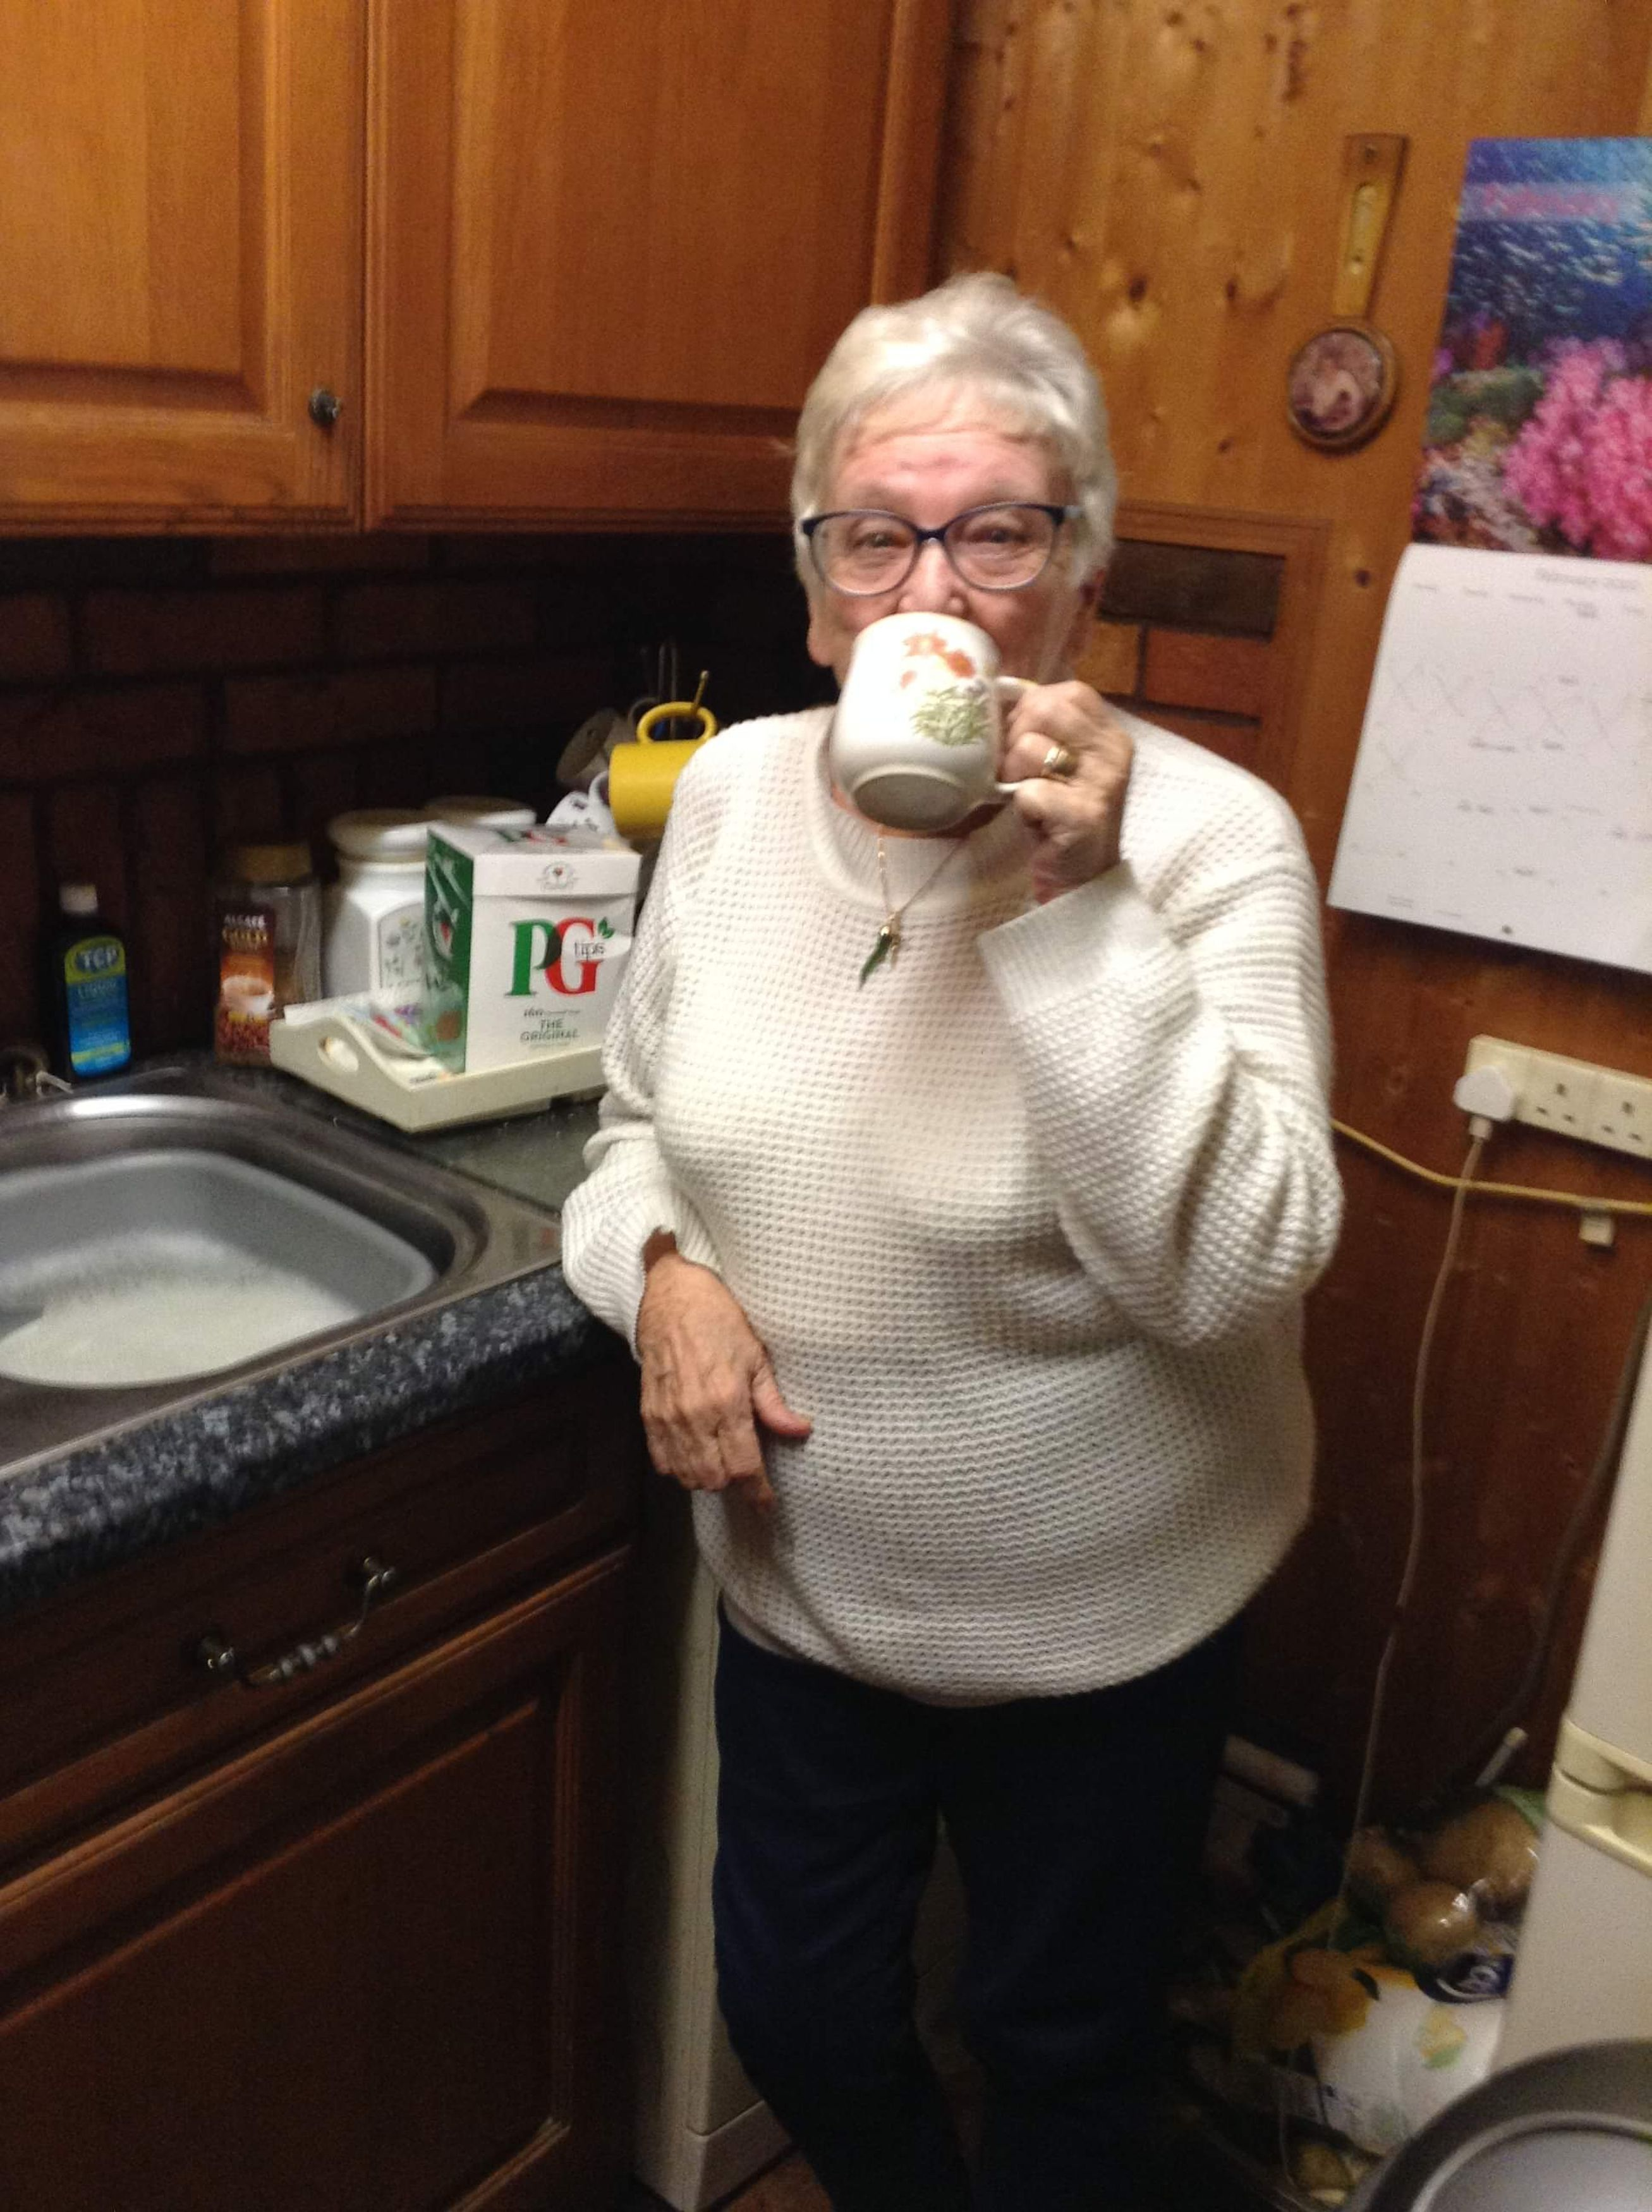 Gran Buys Condoms Instead of Teabags